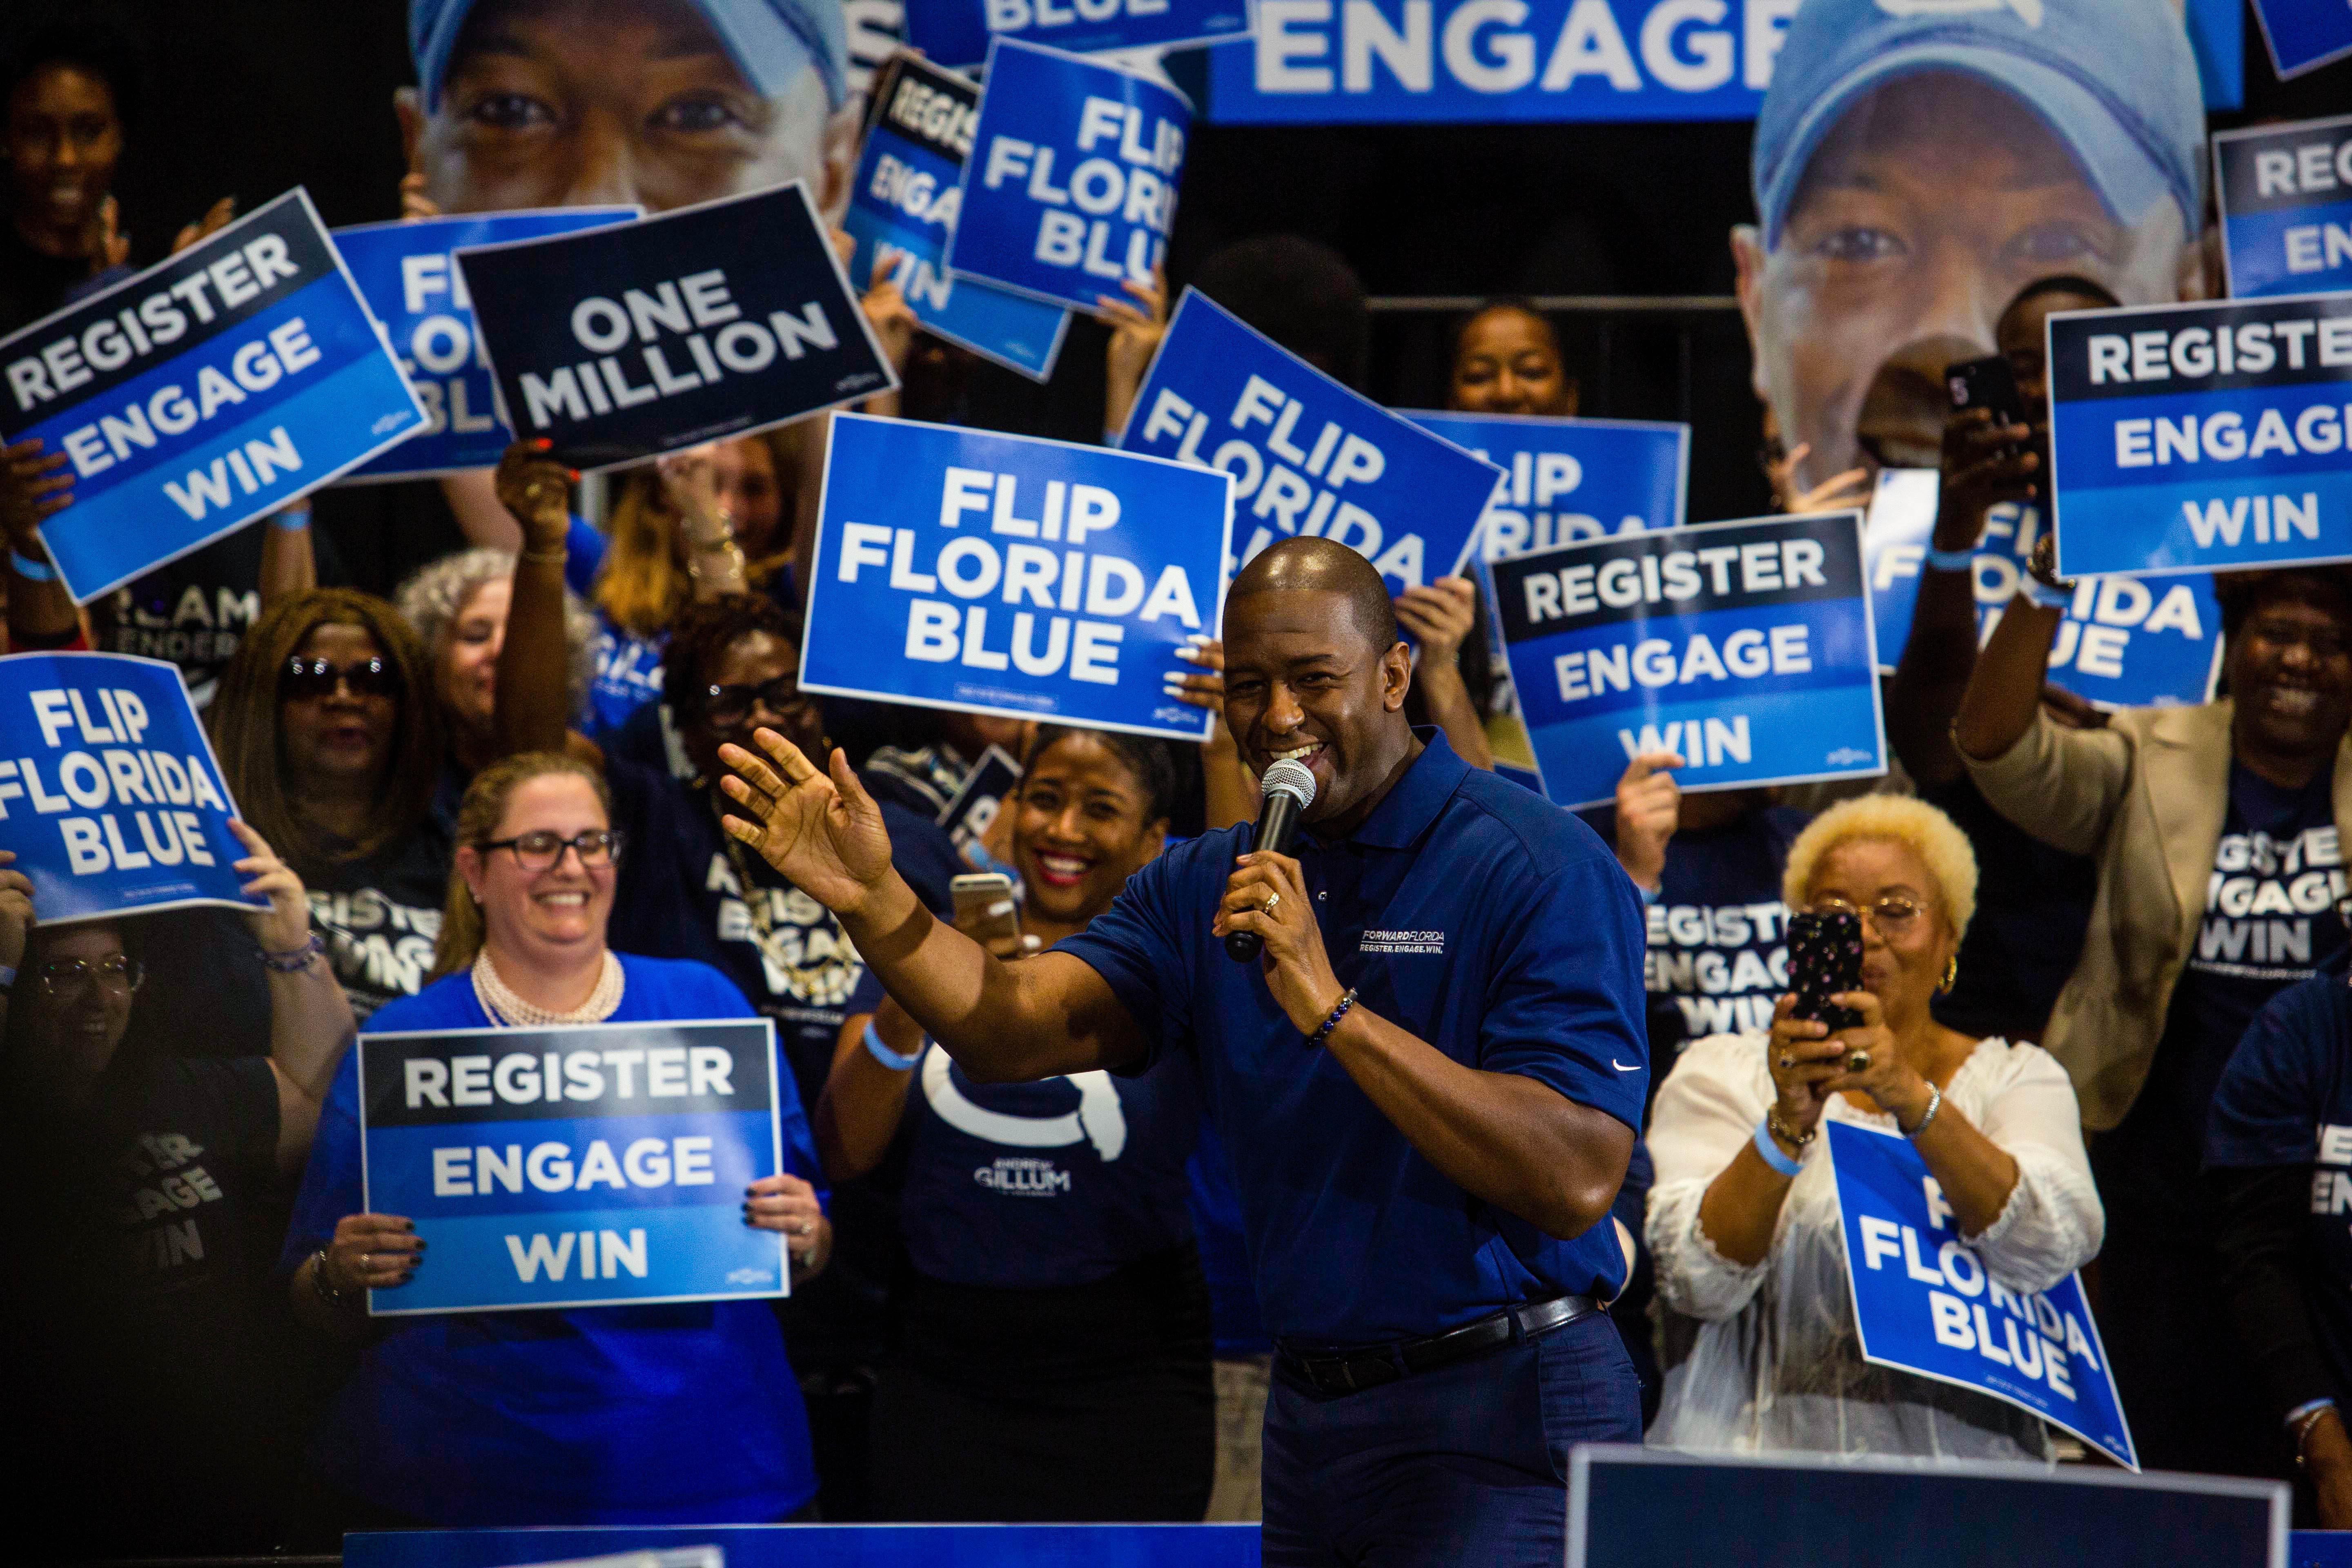 MIAMI GARDENS, FL - MARCH 20: Former Florida gubernatorial candidate Andrew Gillum addresses the audience during an event on March 20, 2019 in Miami Gardens, Florida. Gillum will launch a major campaign to register 1 million Florida voters before the 2020 election. (Photo by Saul Martinez/Getty Images)